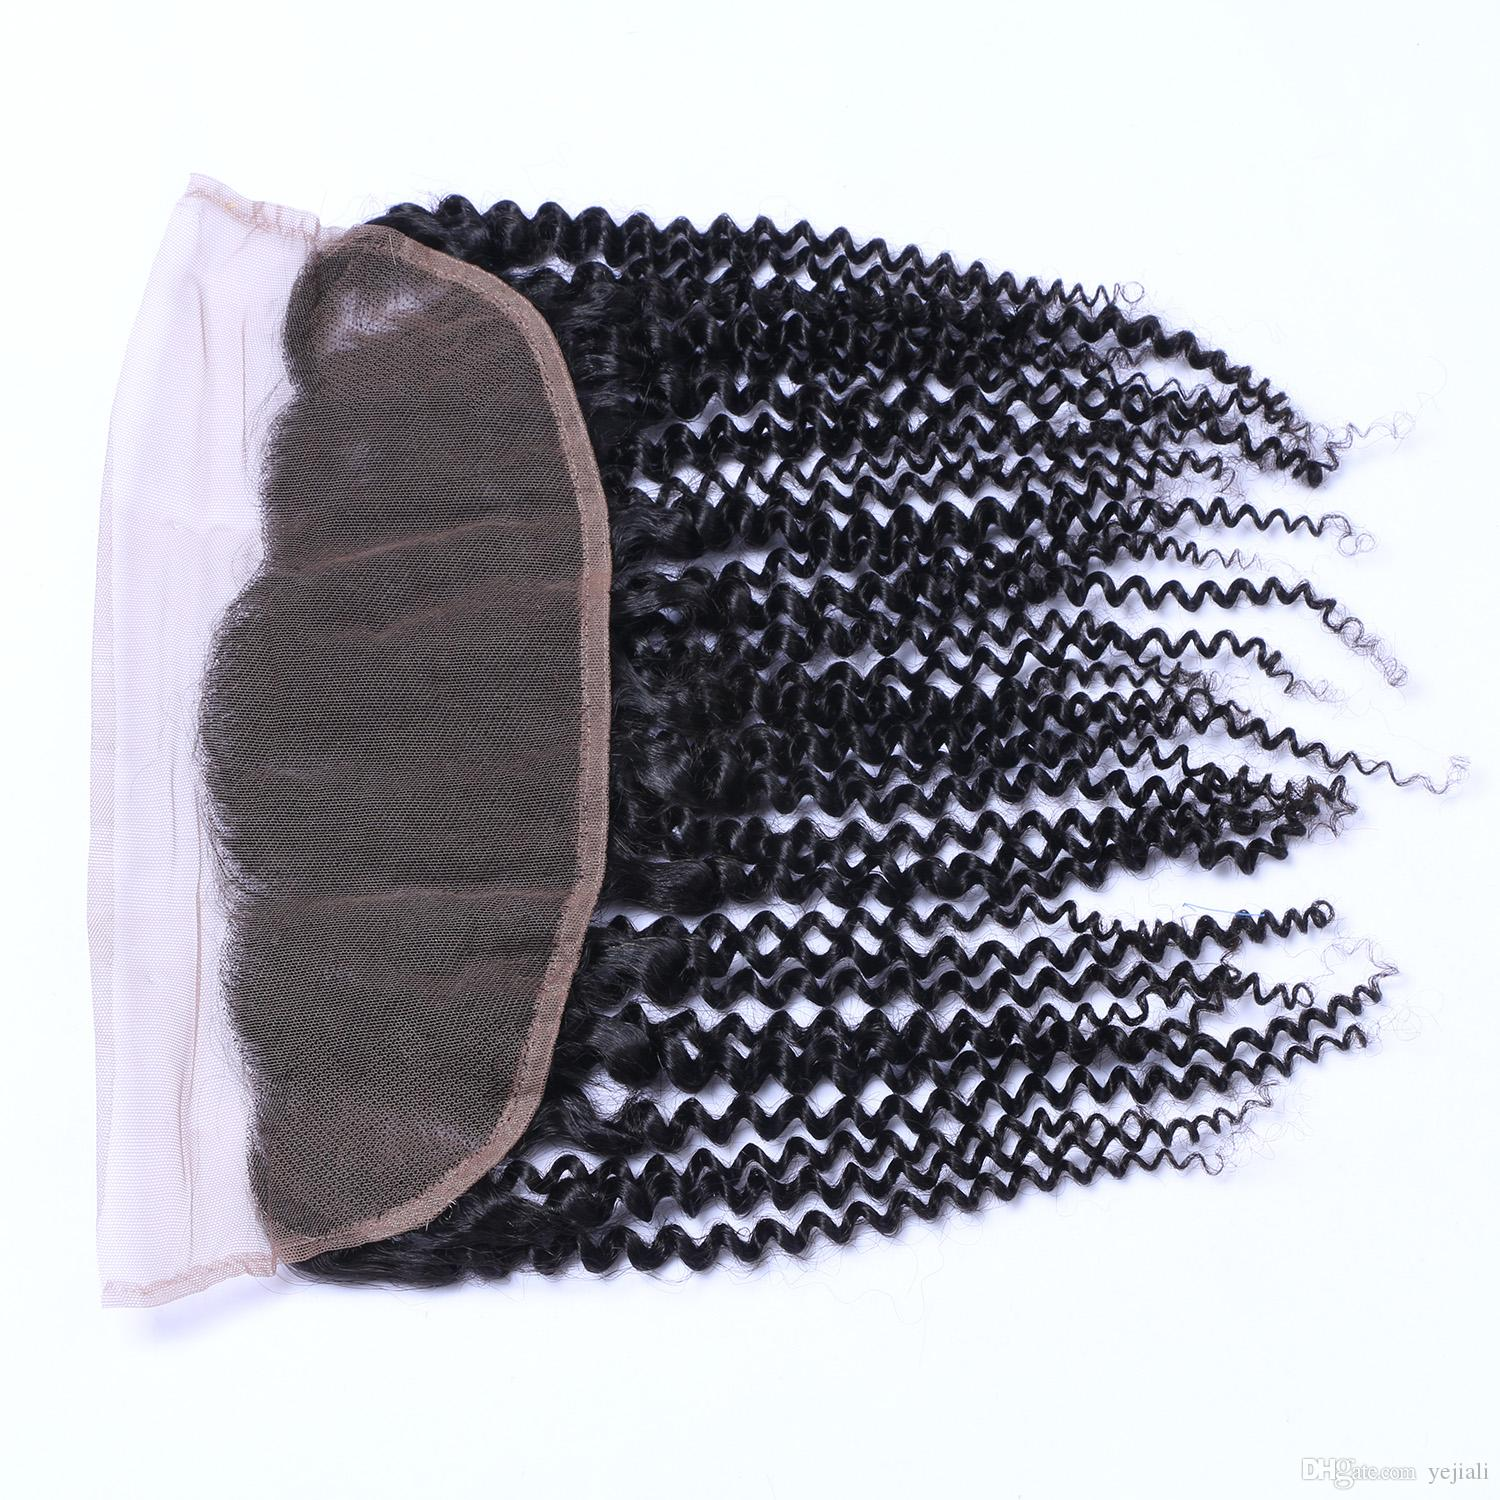 Brazilian Kinky curly 13x4 Lace Frontal Closure With Baby Hair Remy Human Hair Ear To Ear Pre Plucked Free Part